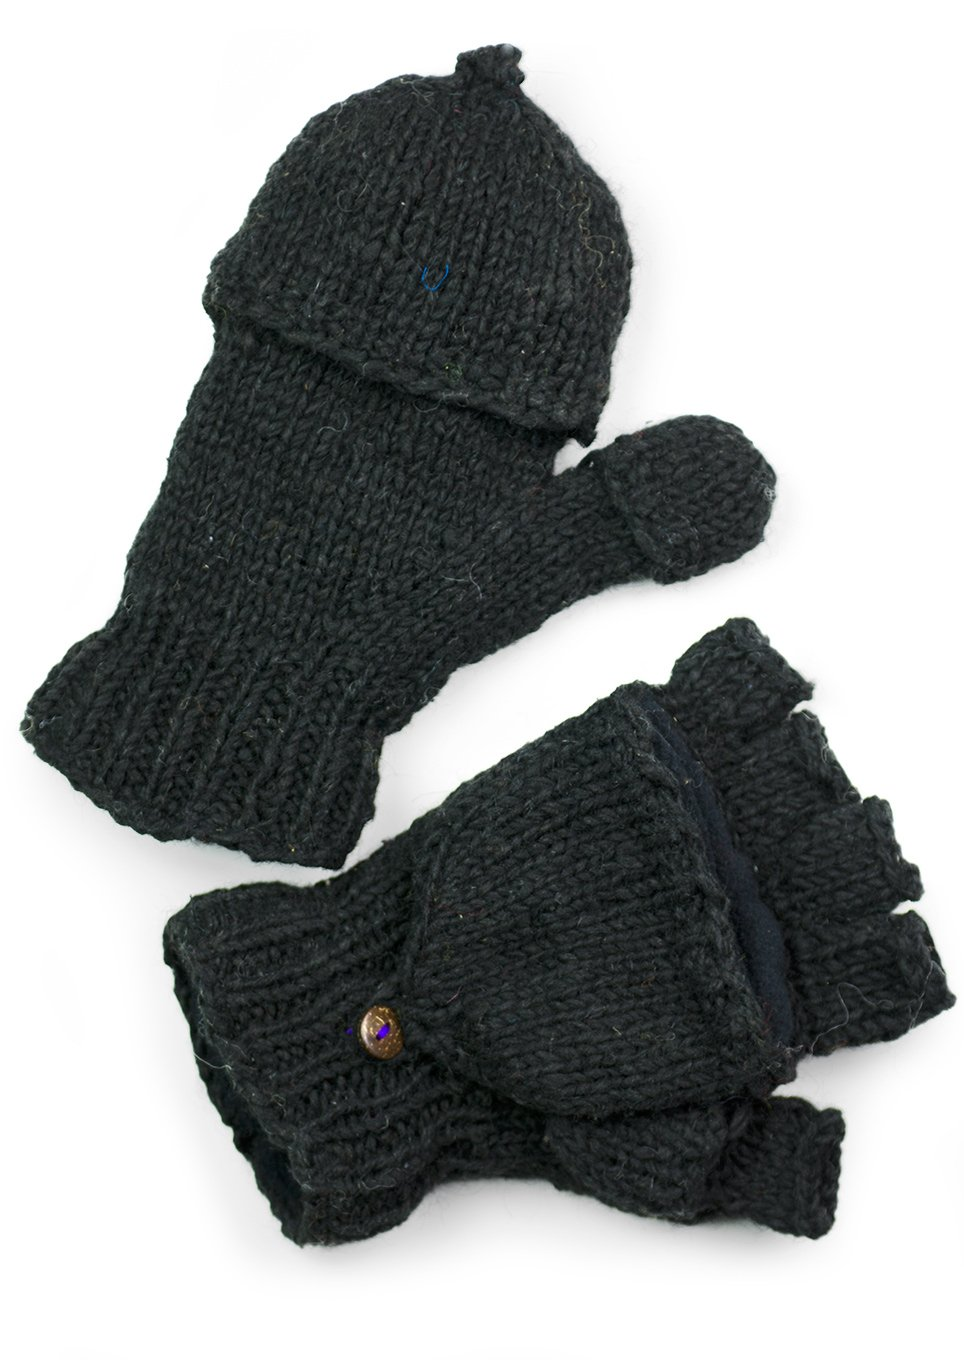 TCG Women's Hand Knit Wool Glittens - Black